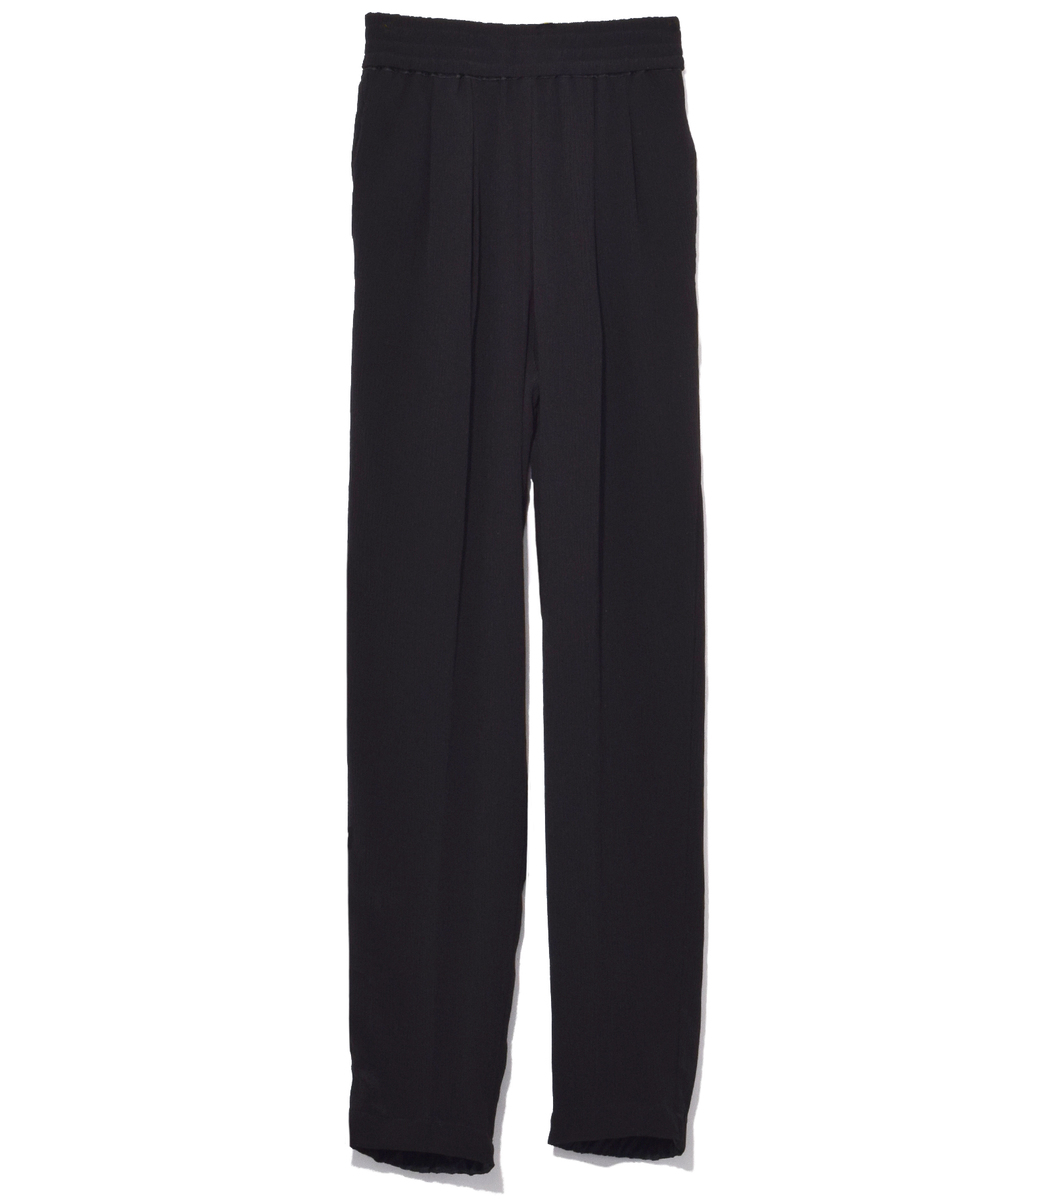 Nero Creponne High Waist Pants